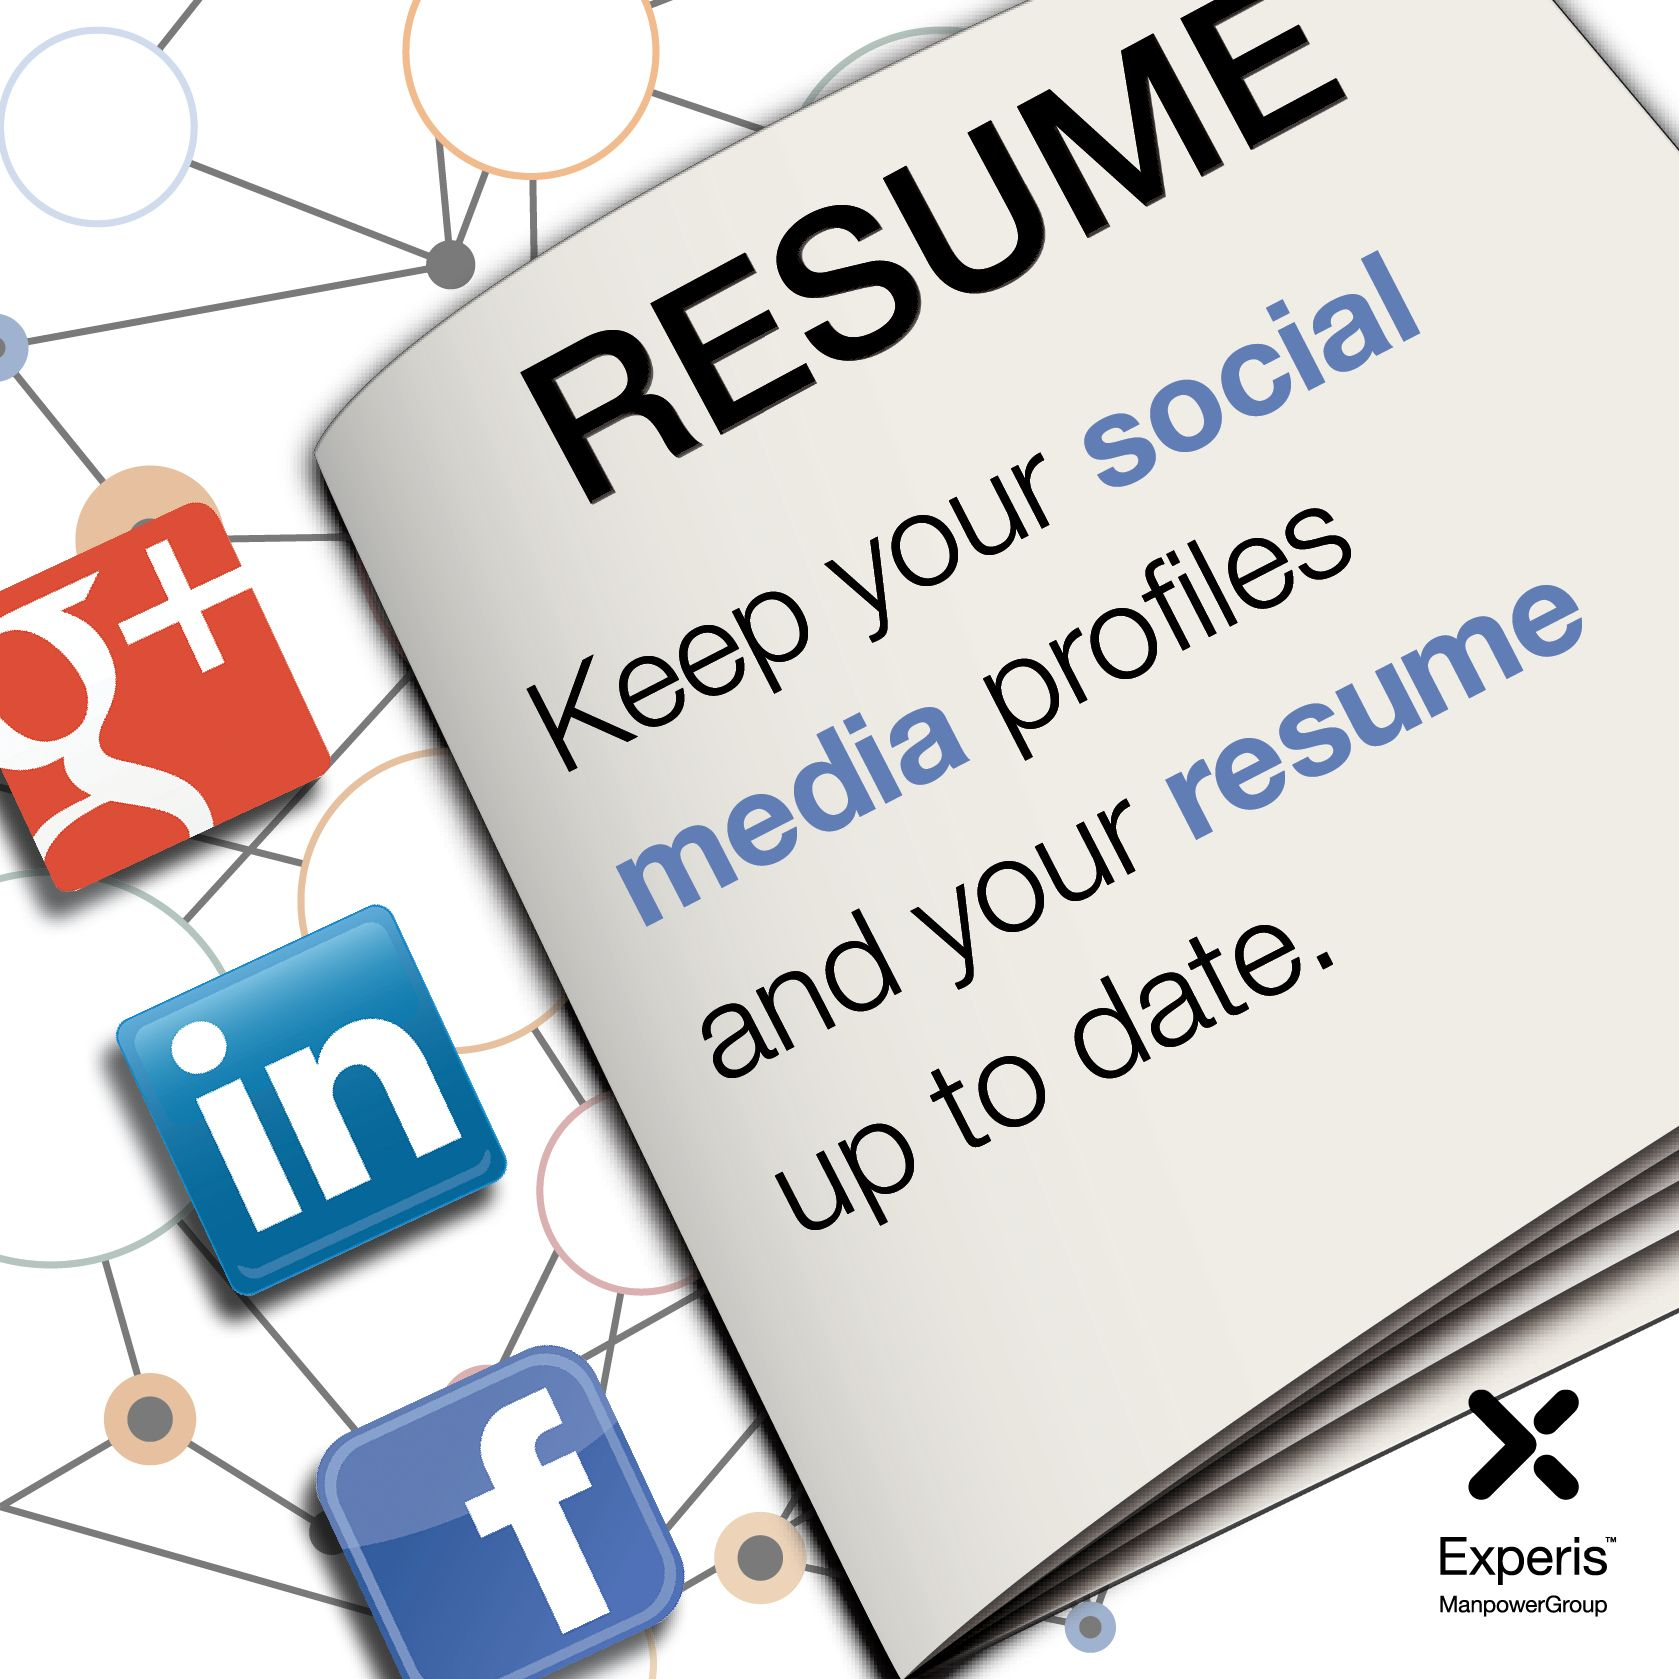 Career Tip: Always be ready for a new opportunity. Keep your LinkedIn and other social media profiles (and your resume) up to date. https://www.facebook.com/photo.php?fbid=532429090128817=a.205418319496564.56220.183135158391547=1